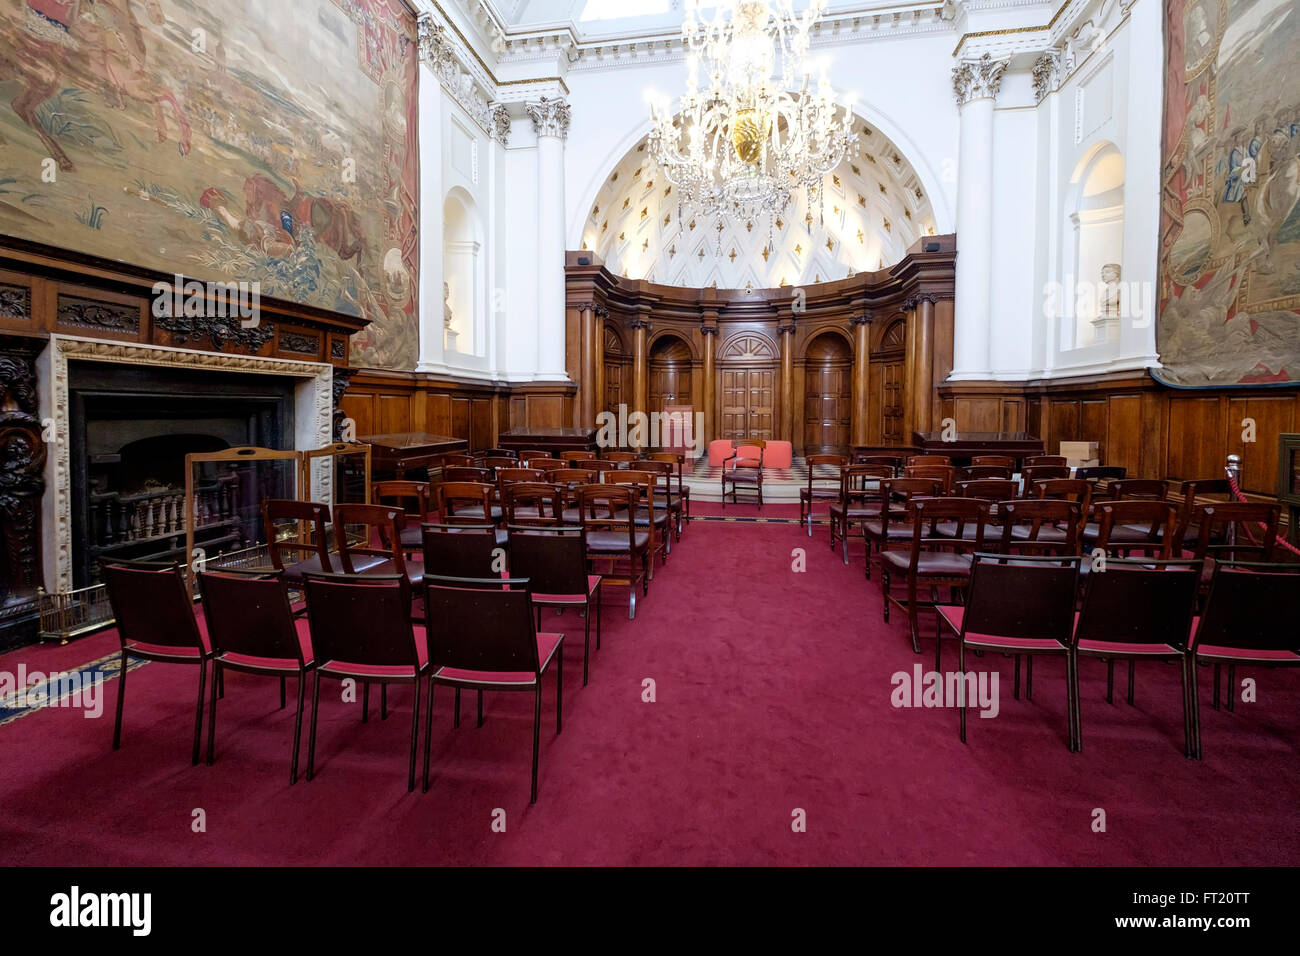 The Irish House of Lords chamber, in the former Irish Houses of Parliament, now Bank of Ireland, Dublin, Republic Stock Photo